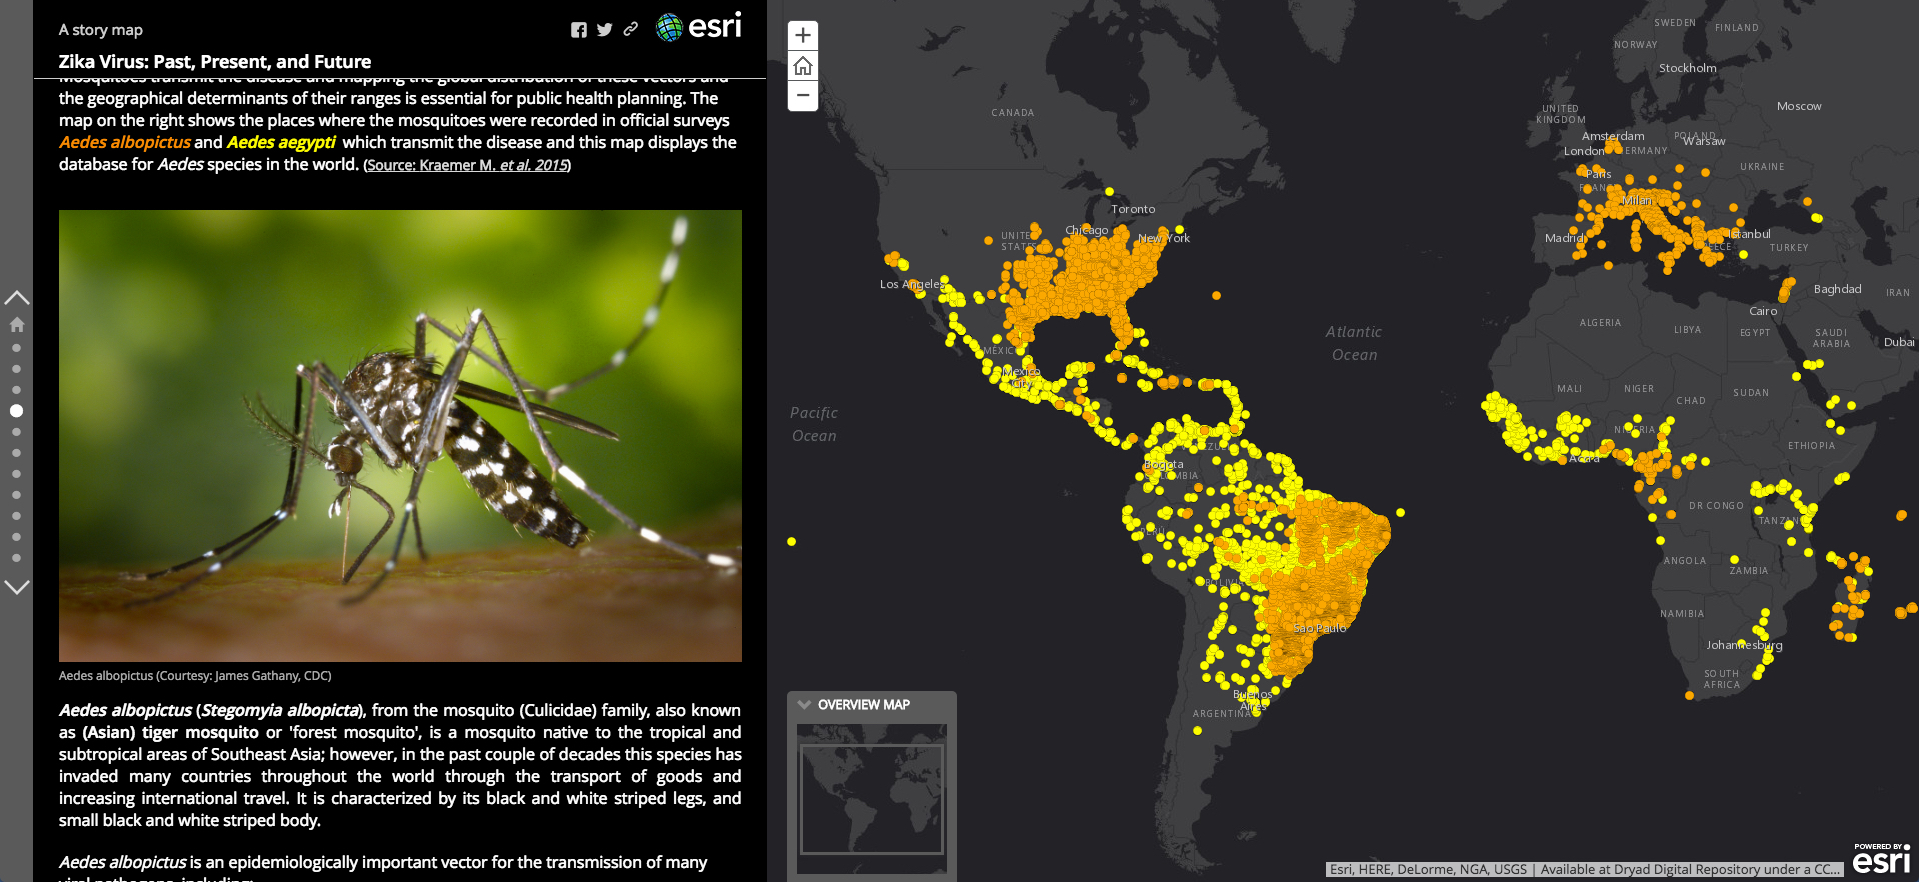 GIS Technology Proves Fundamental in Battle Against Zika